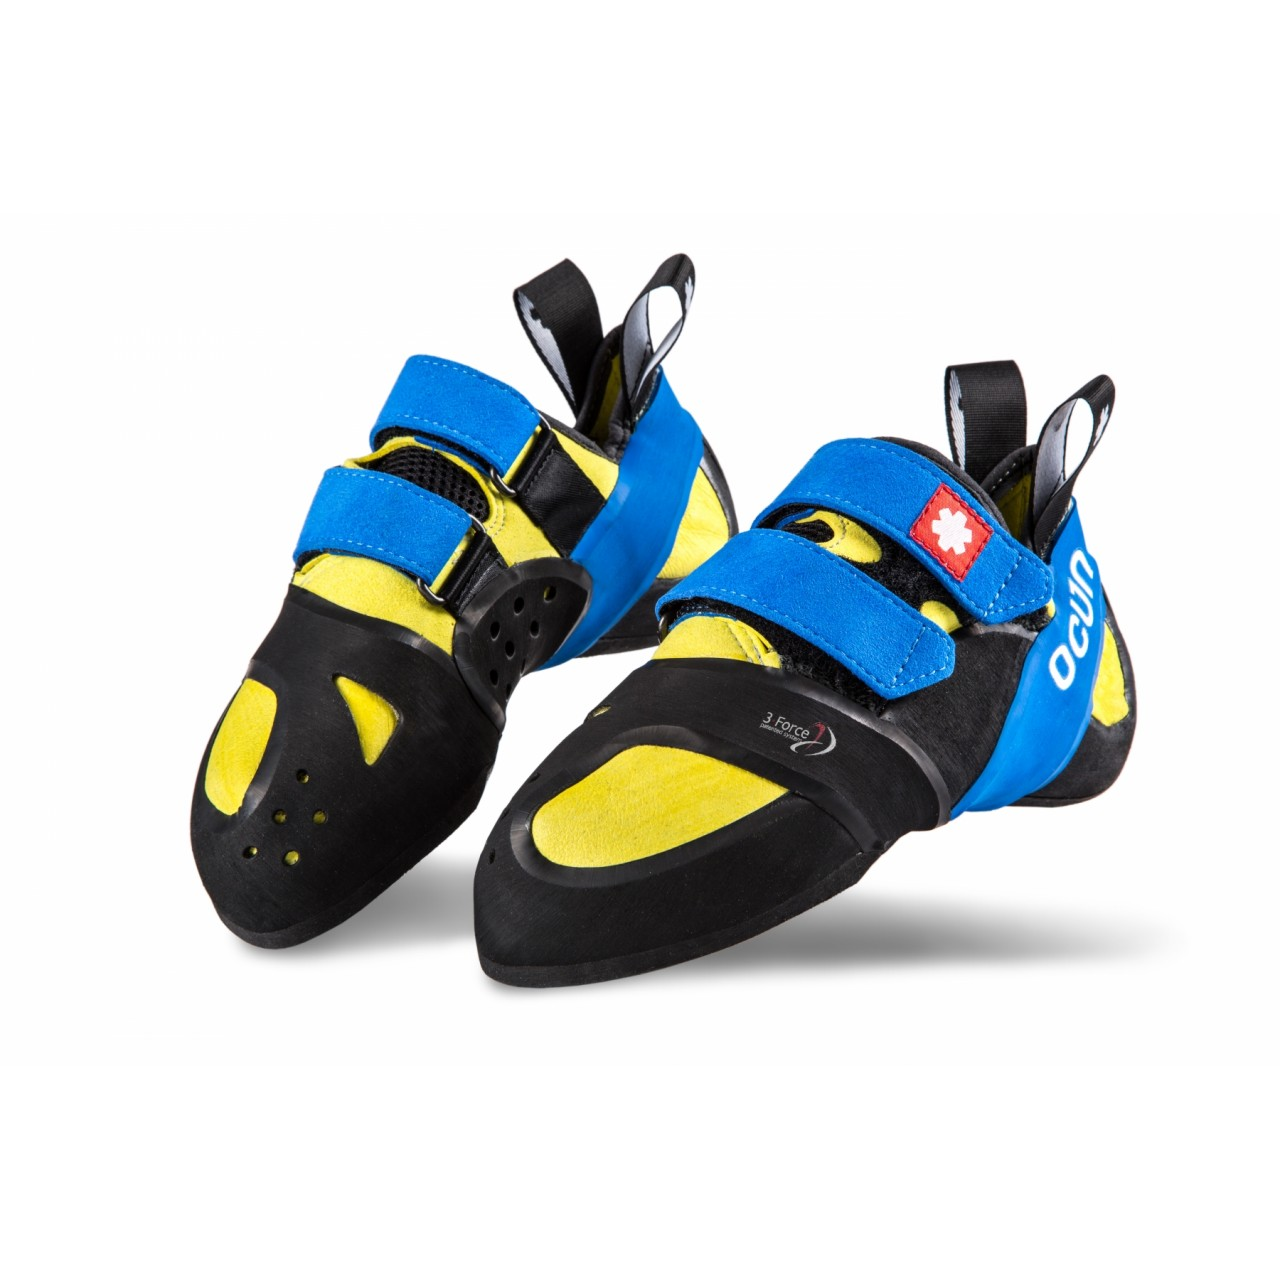 Ocun have designed two version of their velcro fastened performance shoe 85fd806f8b